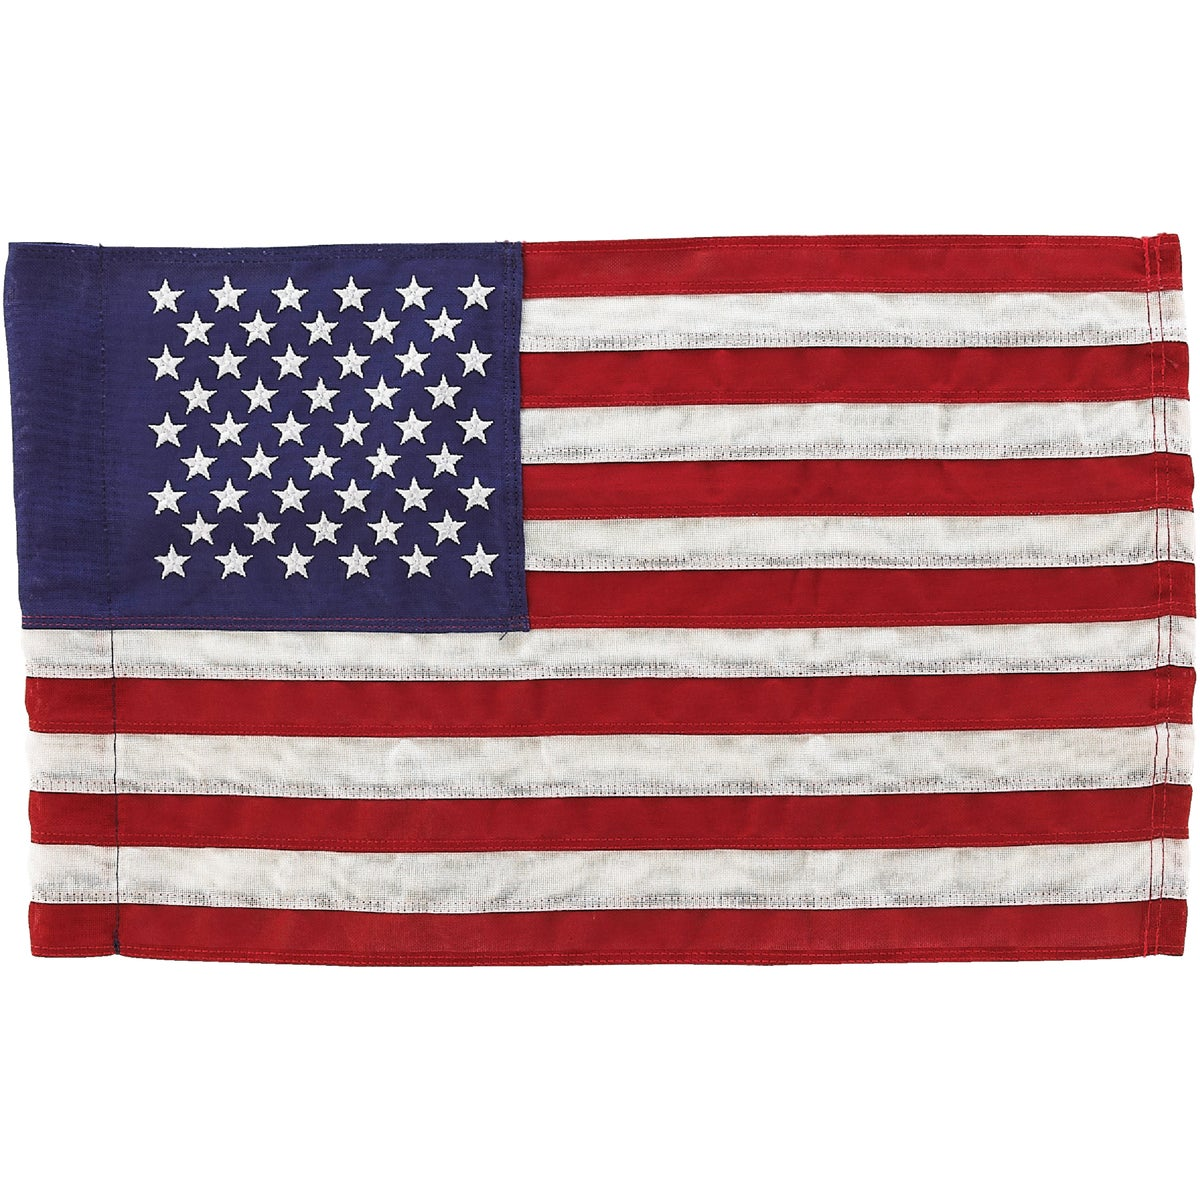 12X18 U.S. GARDEN FLAG - USGF-C by Valley Forge Flag